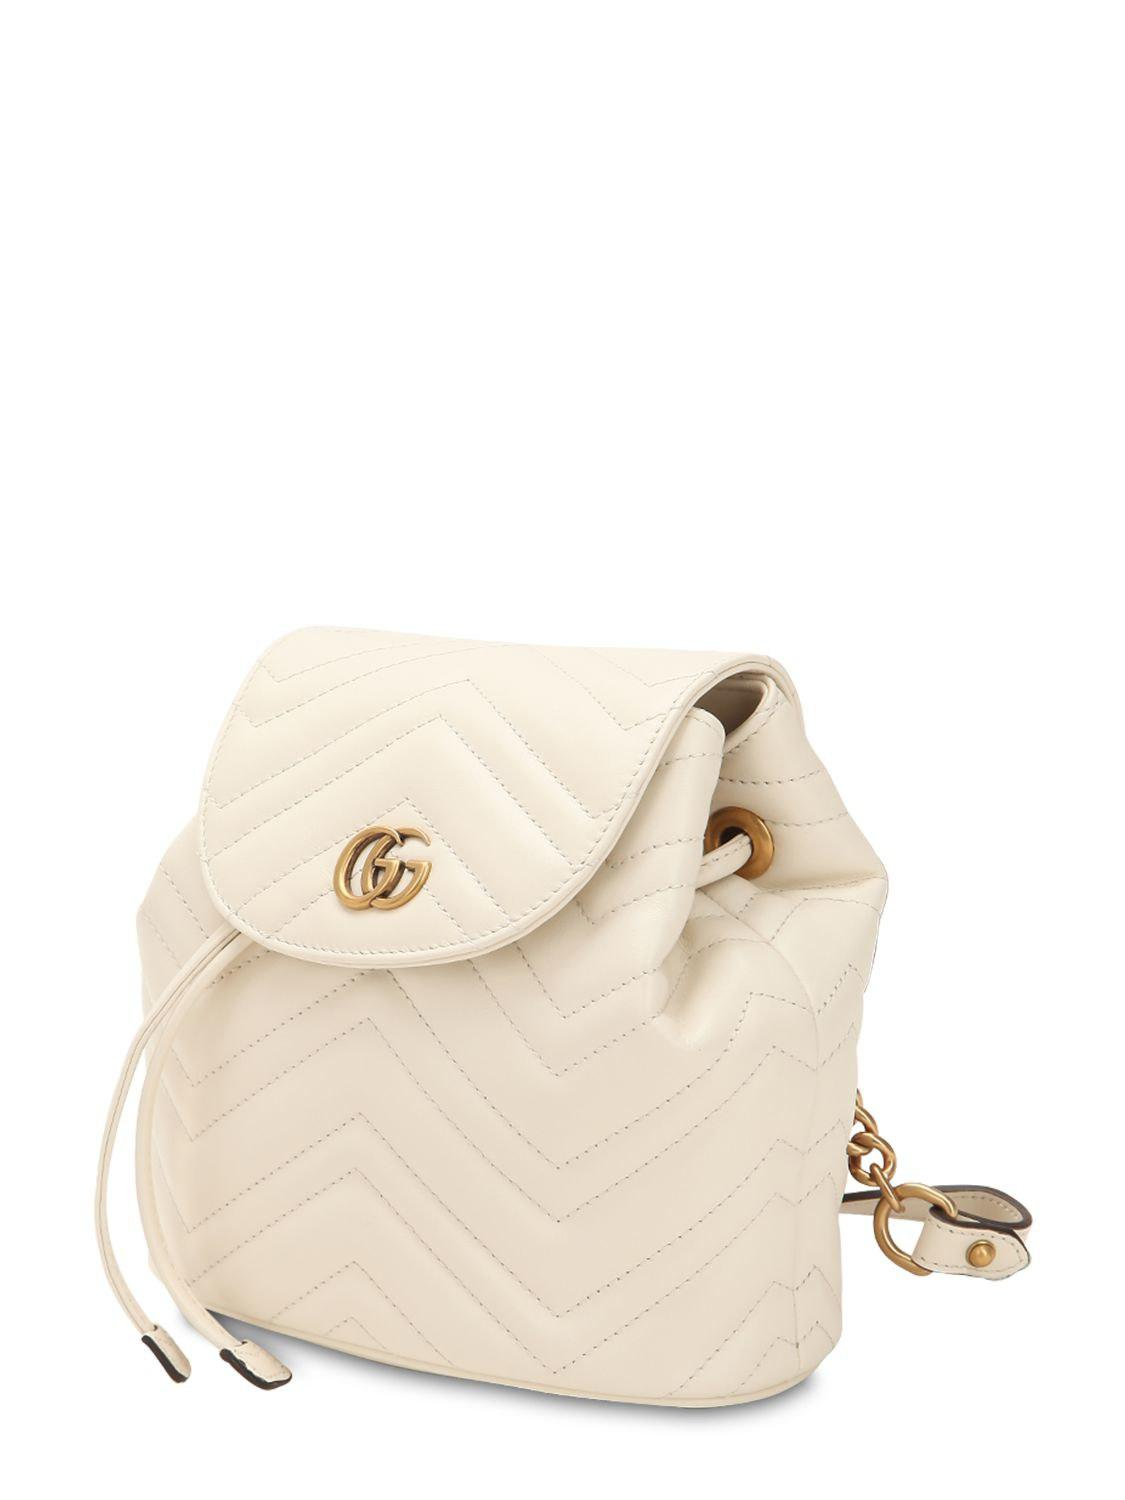 5fc3fd4c9484aa Gucci - White Mini Gg Marmont Leather Backpack - Lyst. View fullscreen